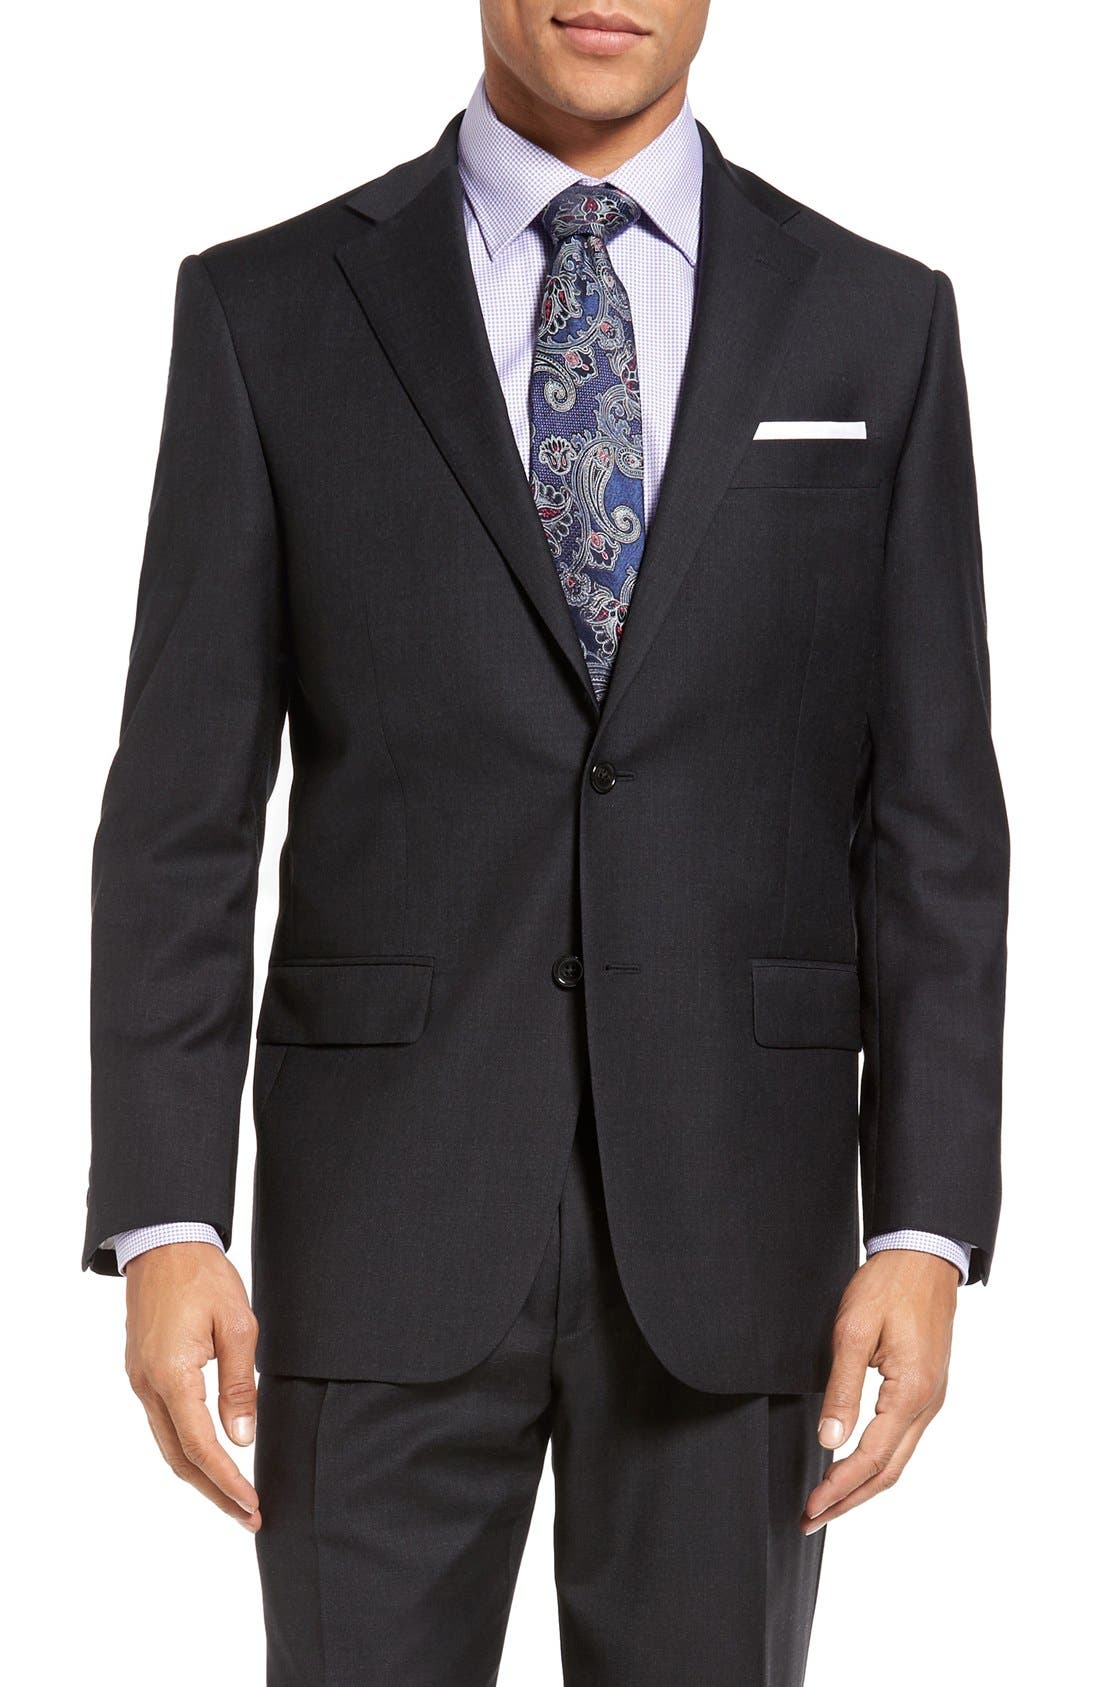 Chicago Classic Fit Solid Wool Suit,                             Alternate thumbnail 6, color,                             010